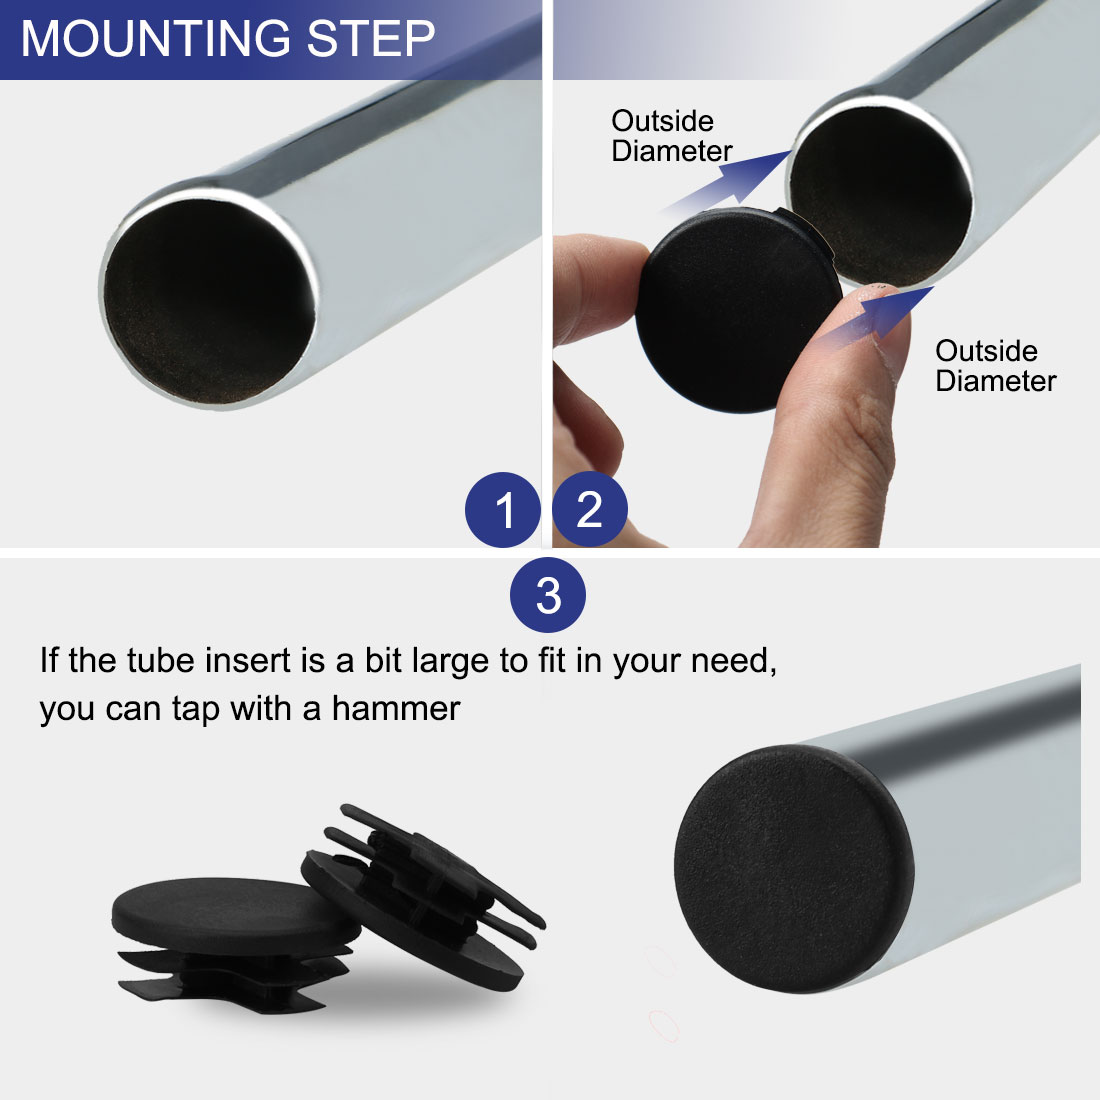 """13pcs 1 1/4"""" Dia 32mm OD Plastic Round Tube Insert Rib Pipe Cover Cap Black Floor Furniture Feet Protector, Fit for 1.14 - image 3 of 7"""